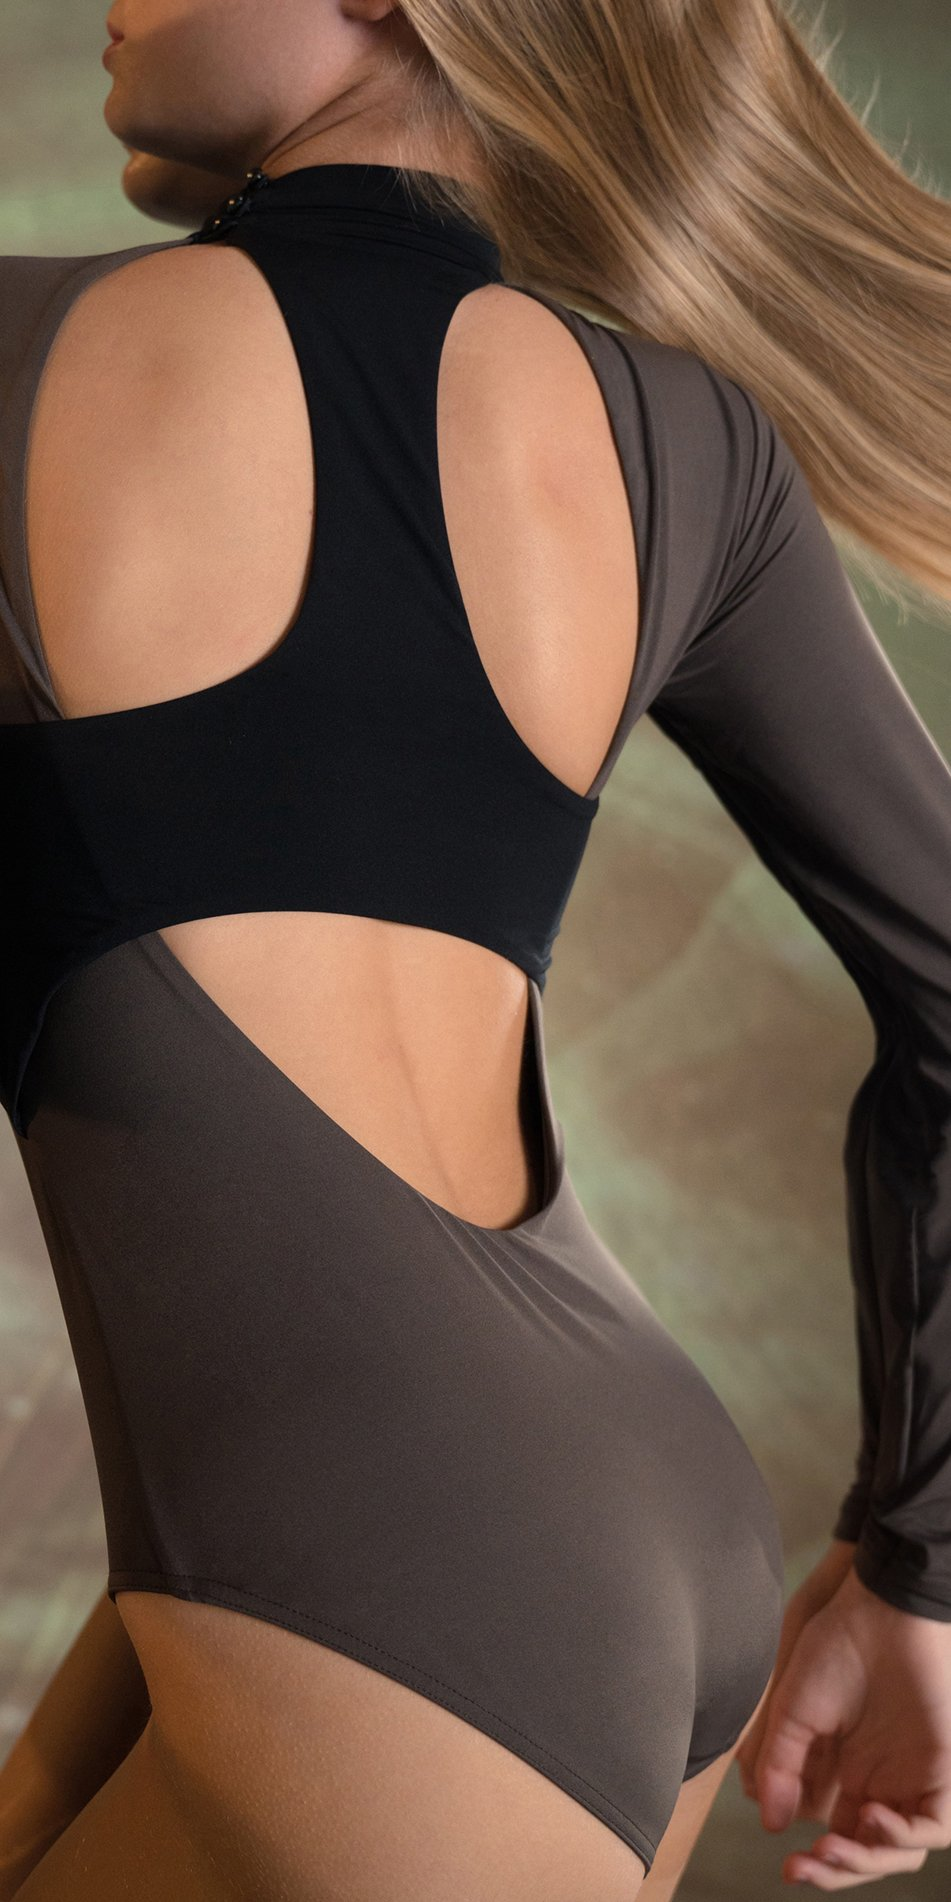 SPACE RACER a two in one racerback leotard chocolate black 2